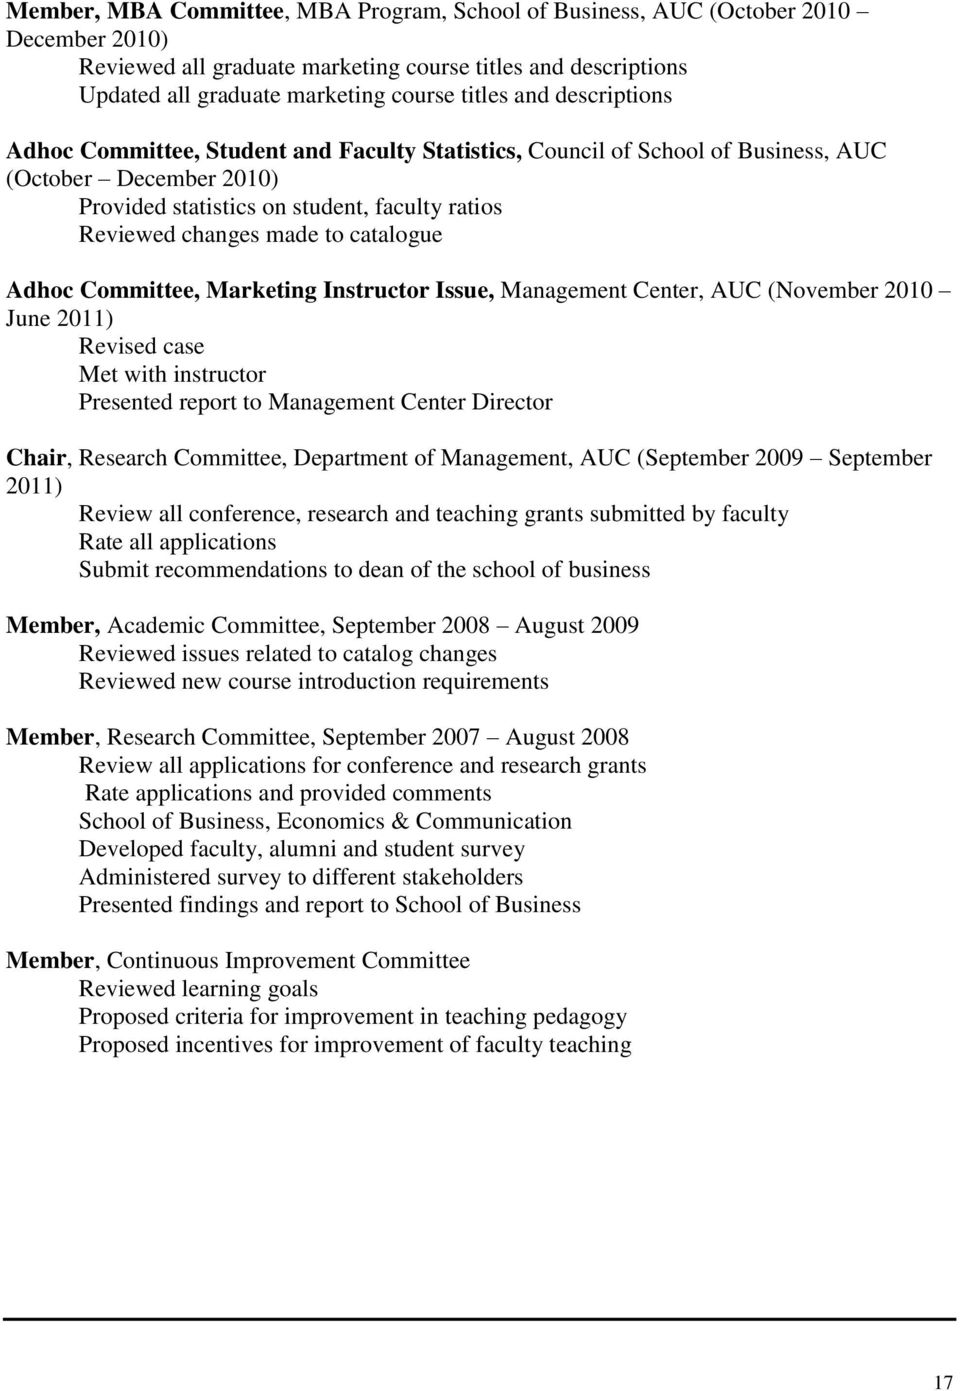 catalogue Adhoc Committee, Marketing Instructor Issue, Management Center, AUC (November 2010 June 2011) Revised case Met with instructor Presented report to Management Center Director Chair, Research